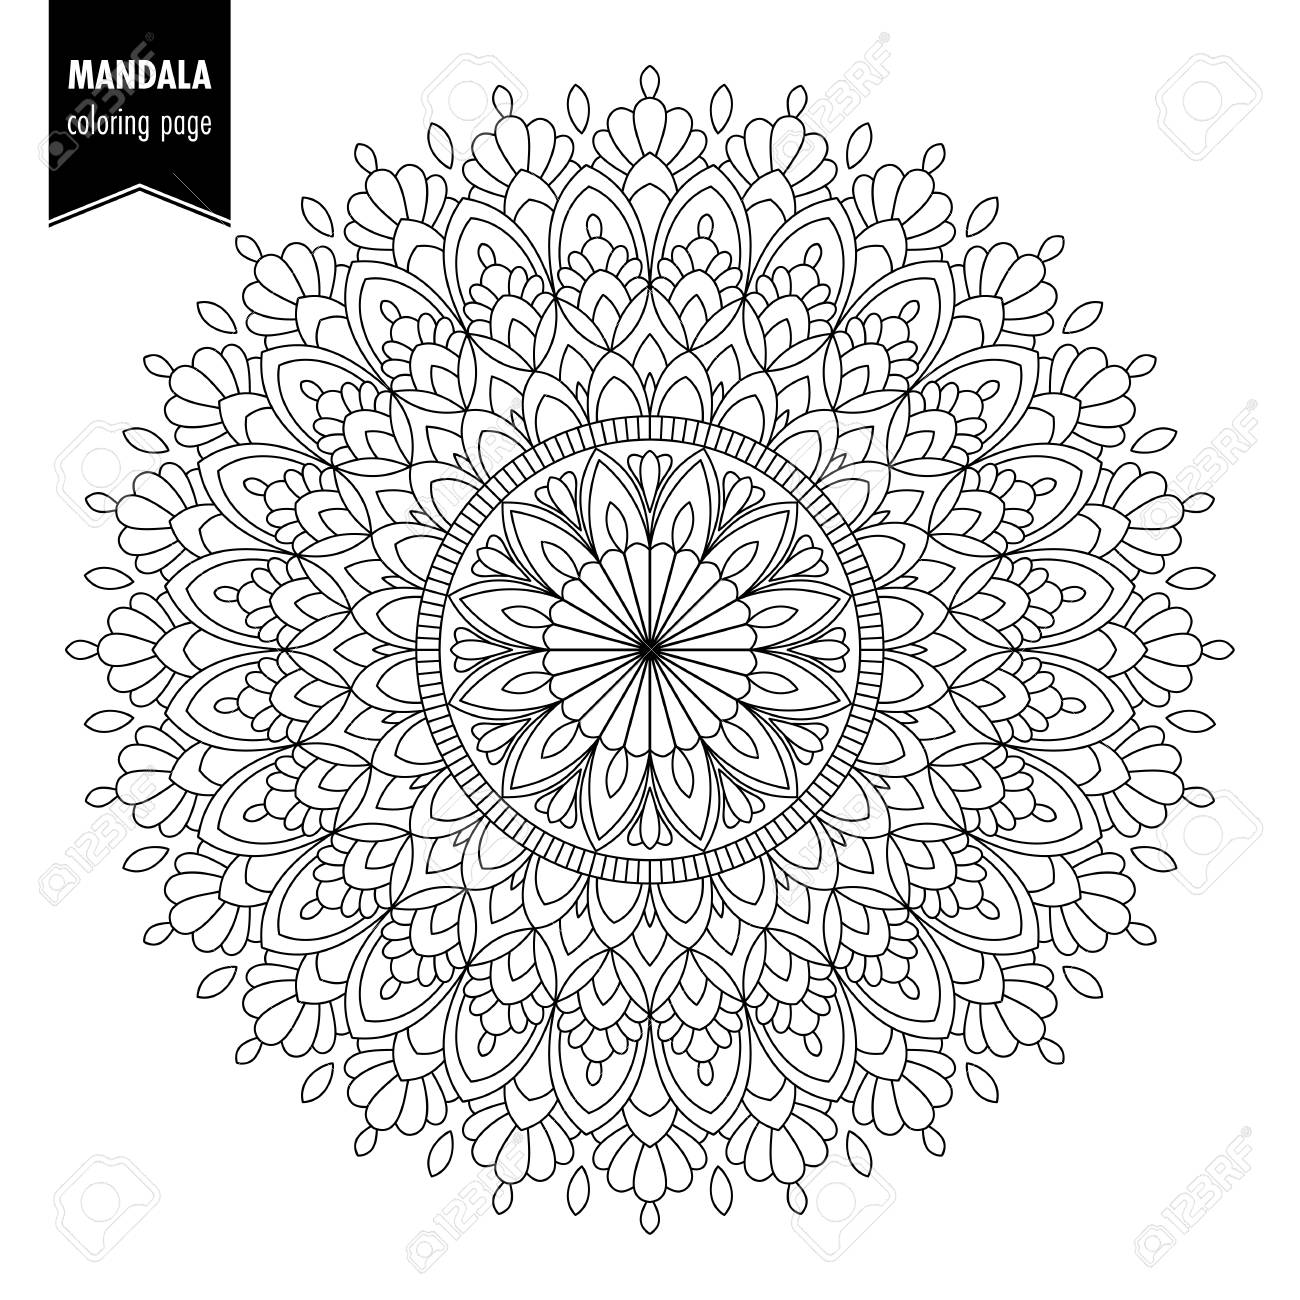 Monochrome ethnic mandala design. Anti-stress coloring page for adults. Hand drawn vector illustration - 89504779